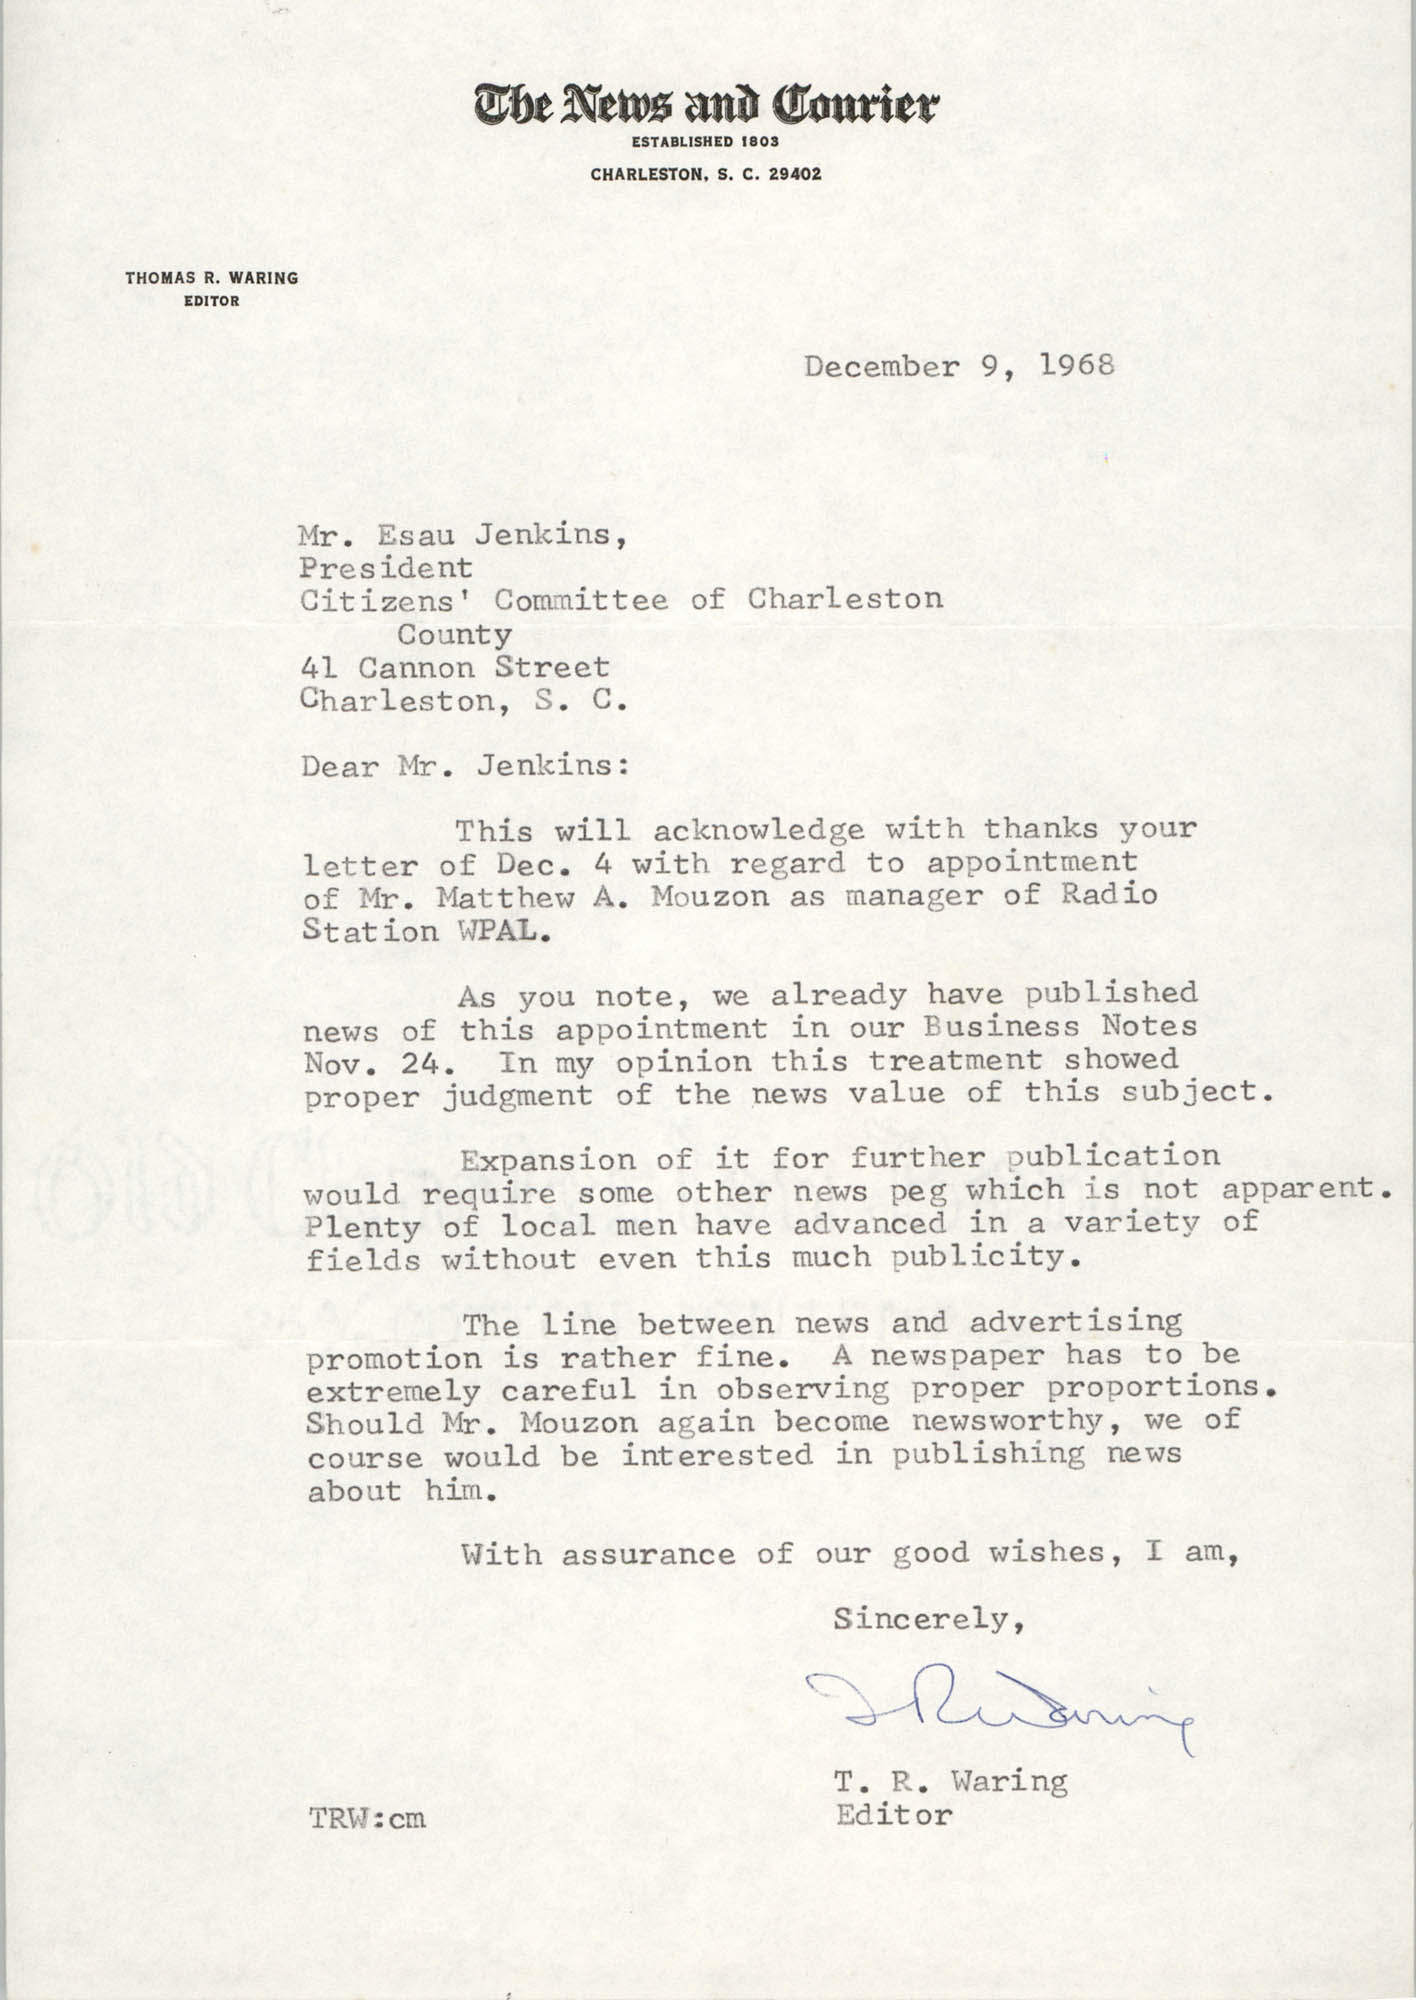 Letter from T. R. Waring to Esau Jenkins, December 9, 1968